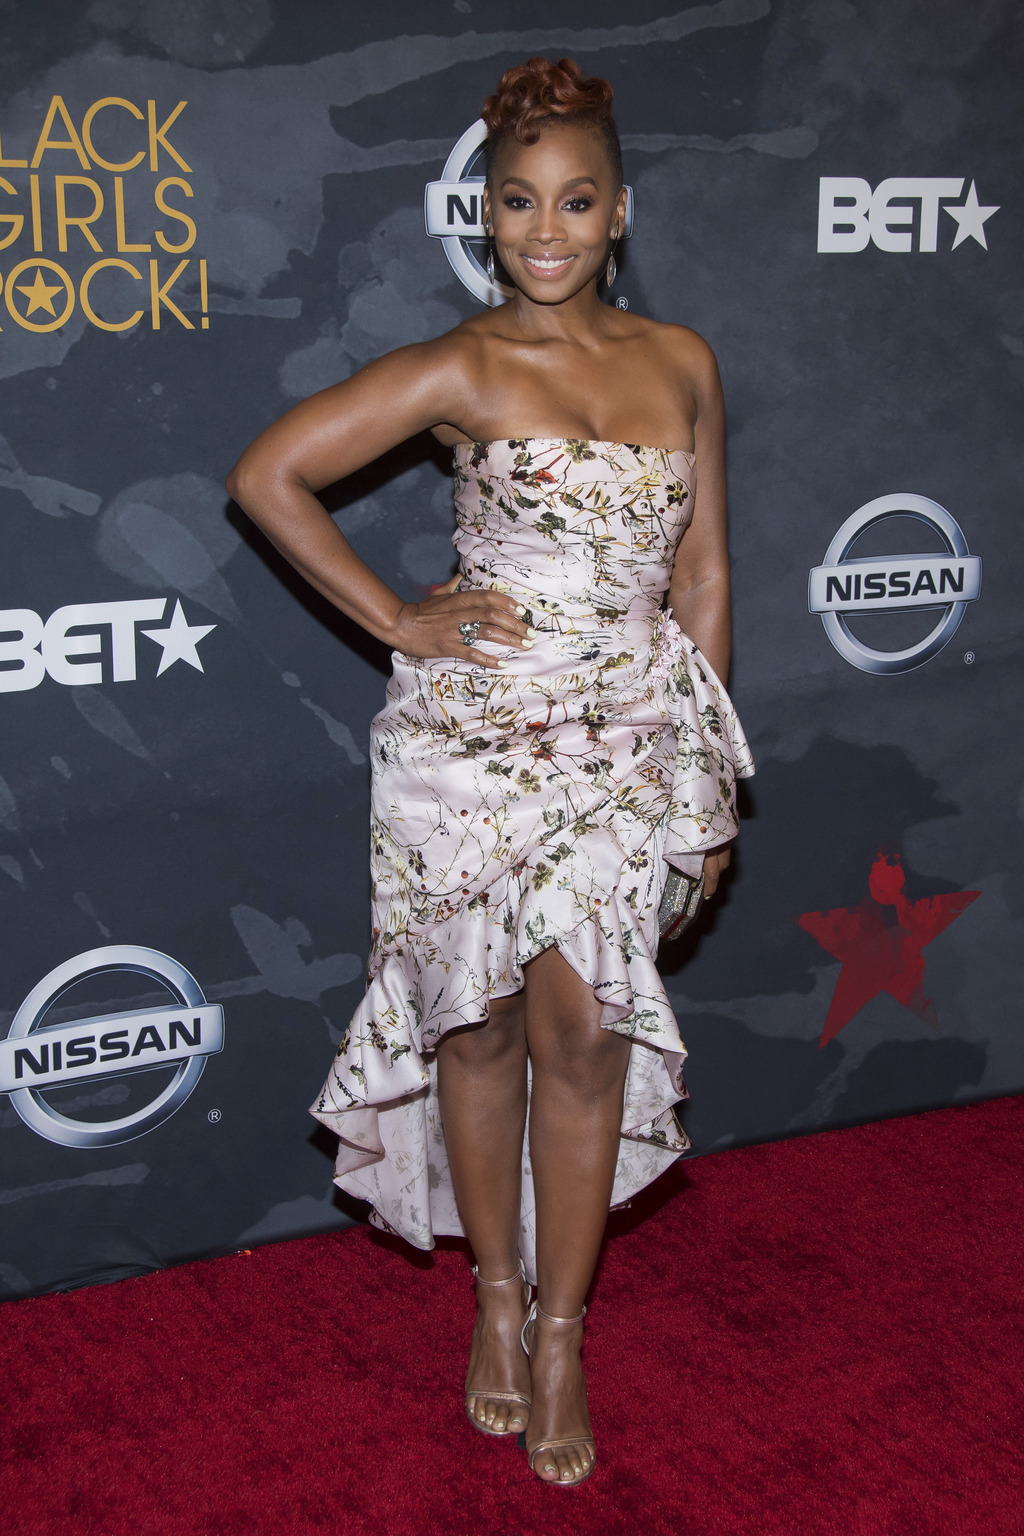 Anika Noni Rose attends the Black Girls Rock! Awards at the New Jersey Performing Arts Center on Saturday, Aug. 5, 2017, in Newark, N.J. (Photo by Cha...